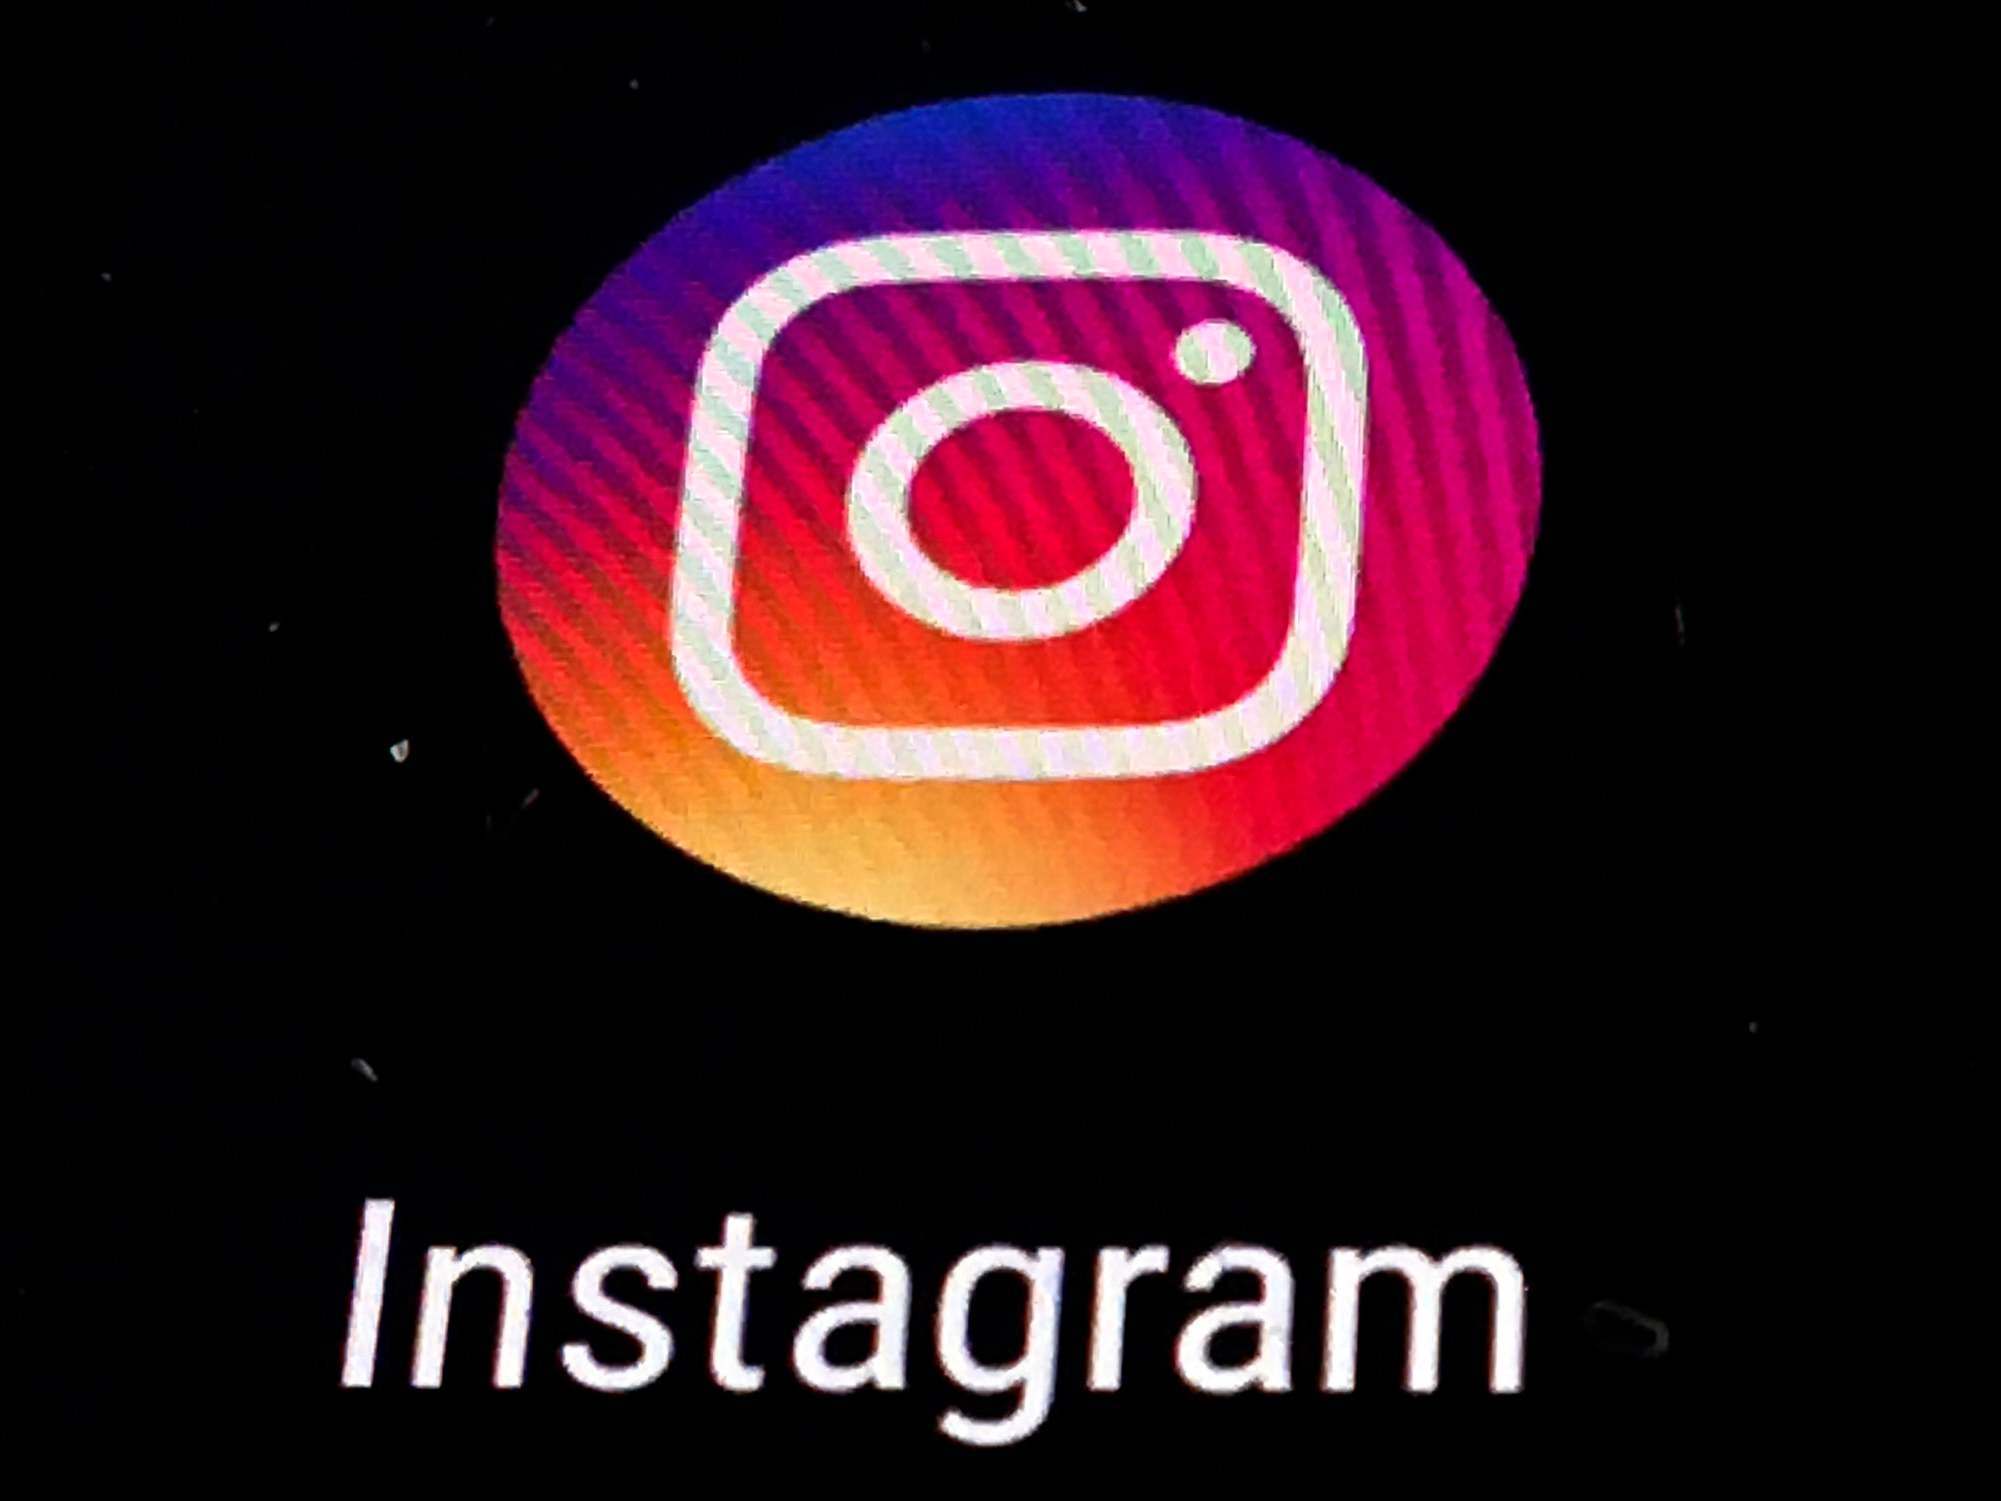 Instagram Down Photo Sharing Website And Facebook Messenger Both Hit By Outage The Independent The Independent